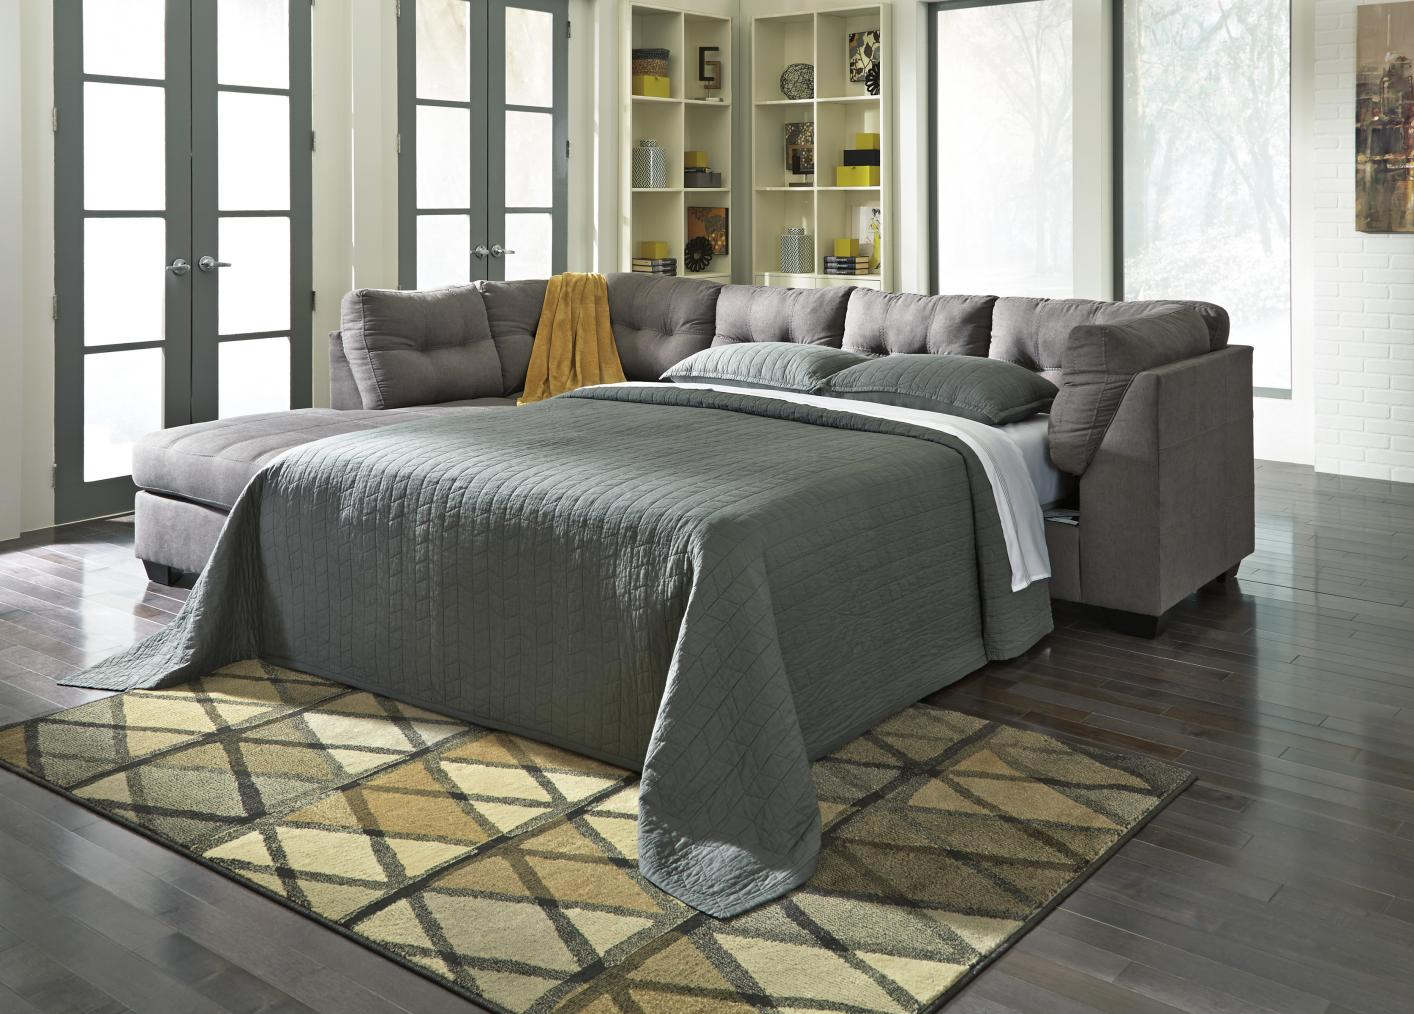 Sectional Sleeper Sofa : Maier grey fabric sectional sleeper sofa steal a